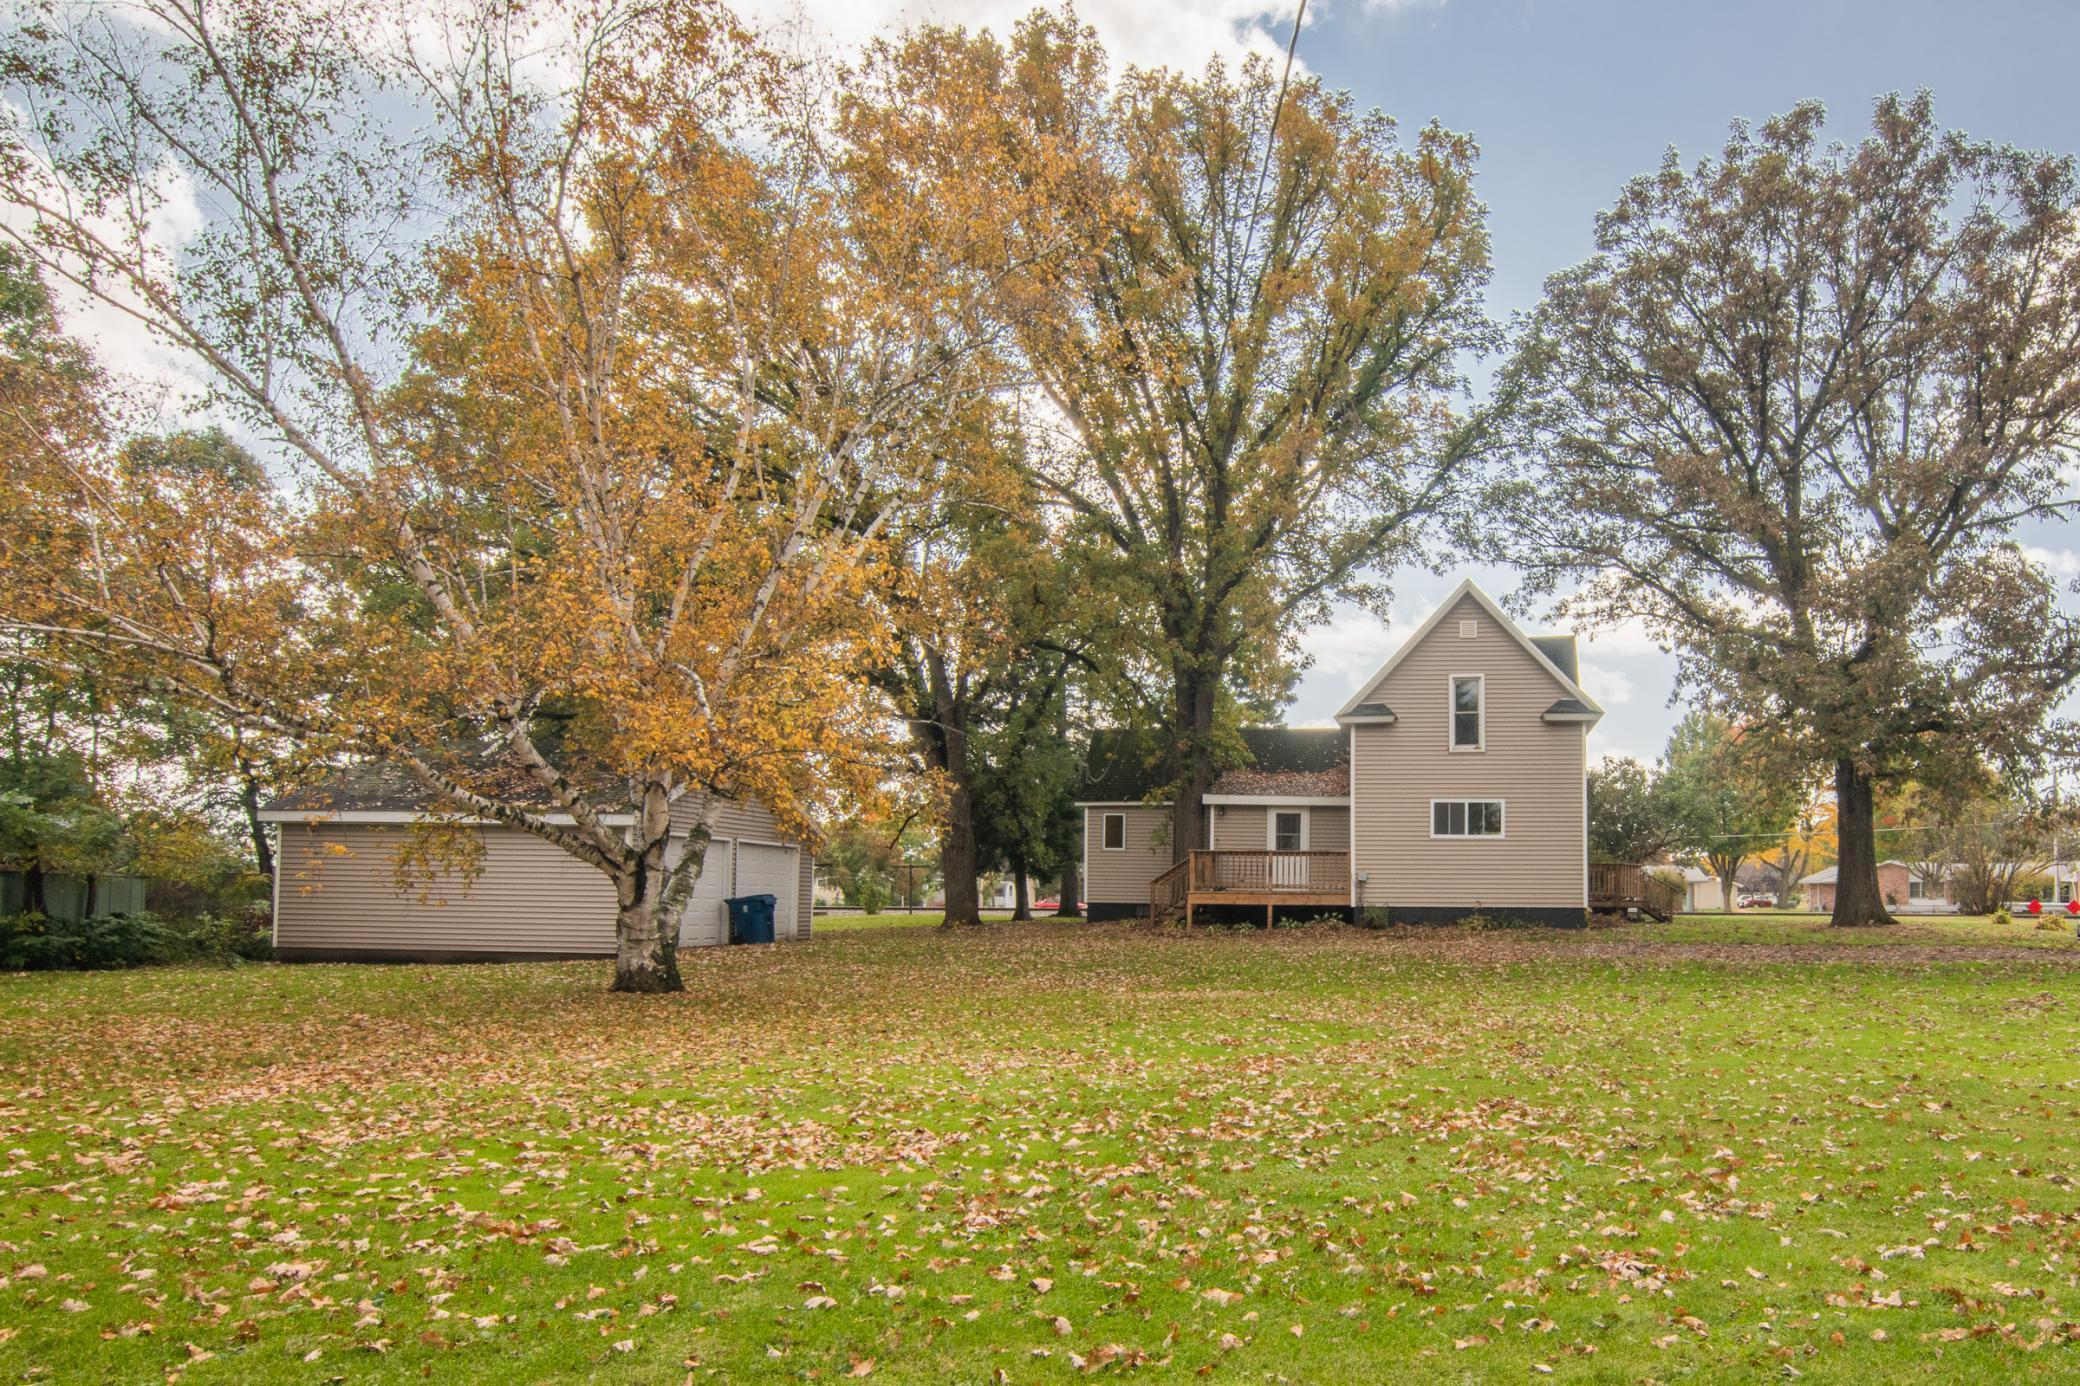 220 N 2nd Street Property Photo - Barron, WI real estate listing